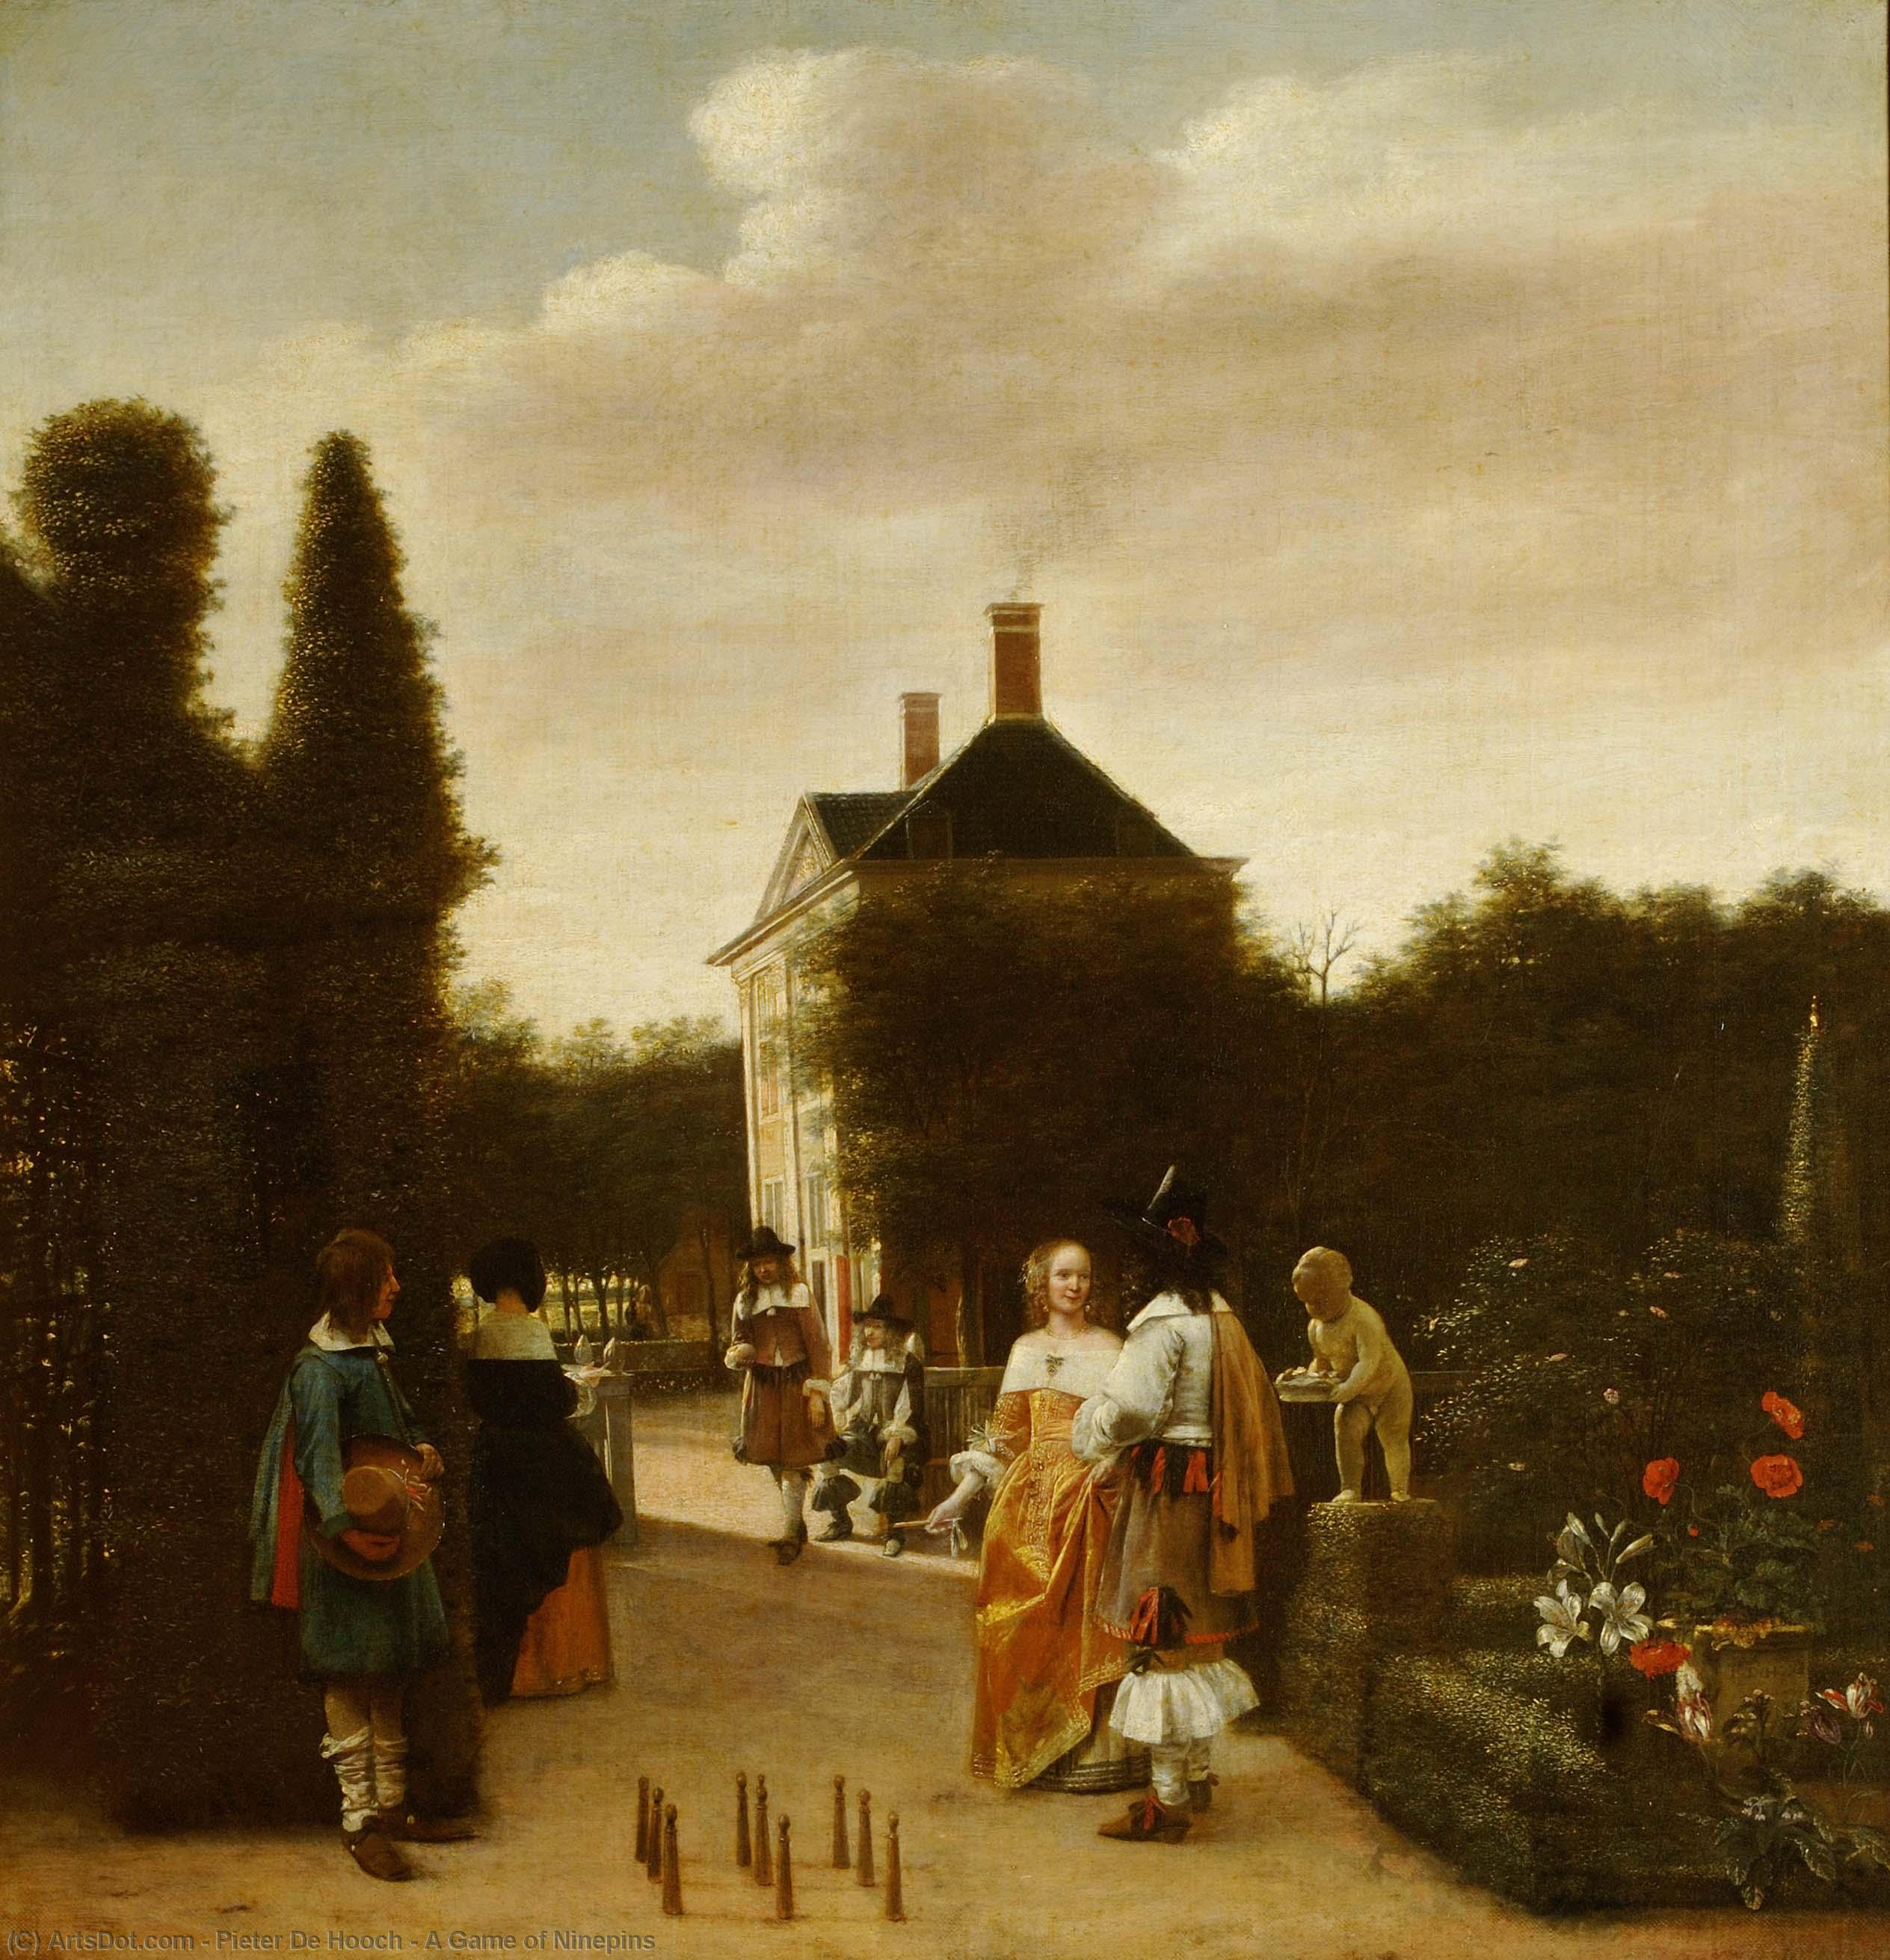 Wikioo.org - The Encyclopedia of Fine Arts - Painting, Artwork by Pieter De Hooch - A Game of Ninepins